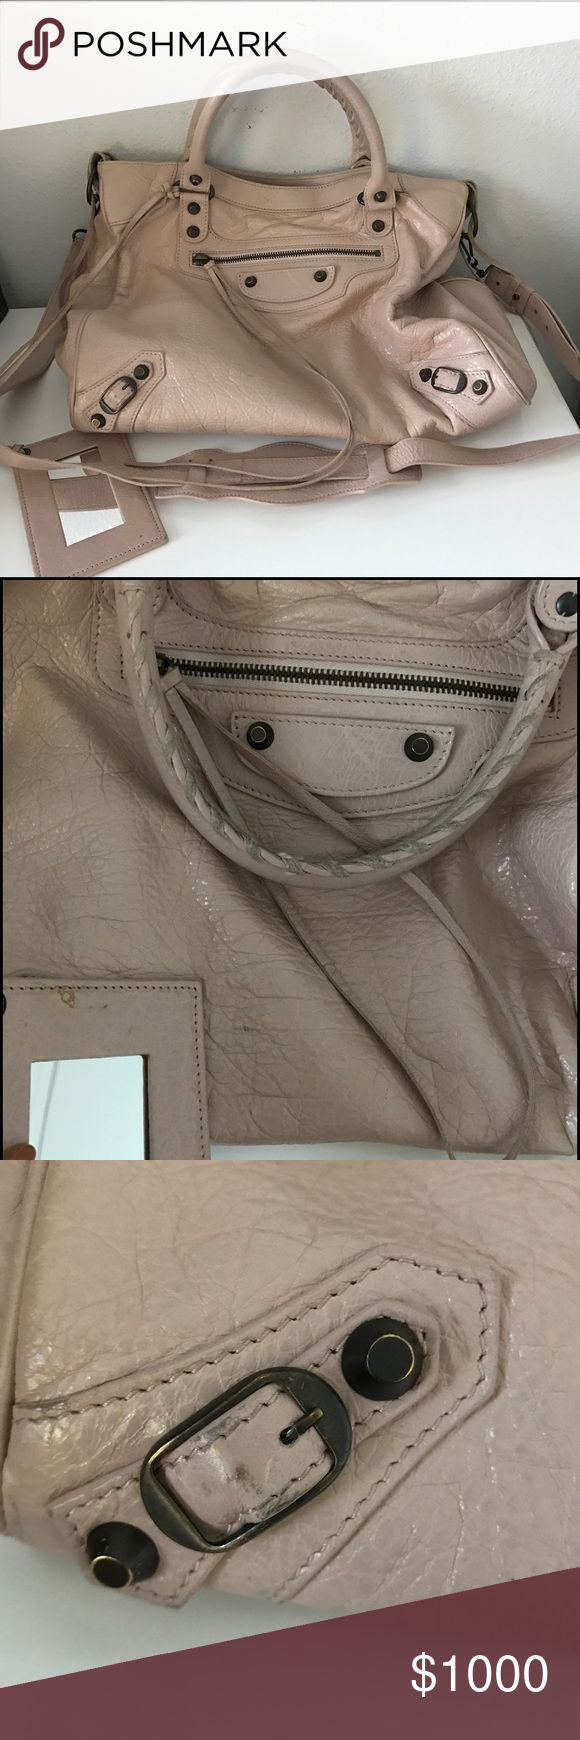 """Balenciaga Classic Velo Tote Lambskin Tote Bag Preowned Balenciaga Classic Velo Tote in Rose. Comes w tags from 2014. Normal wear w/fabric transfer from jeans. Soft lambskin crossbody w/nickel hardware, incl stud & buckle detail Rolled tote handles, 4.5"""" drop Removable shoulder strap, 19.3"""" drop Extended zip top closure Exterior zip pocket w/long tassel pull Removable leather-frame hand mirror Cotton-lined interior w/zip pocket, 2 open pockets & B embossed leather tag 10.5""""H x 13.3""""W x 6""""D…"""